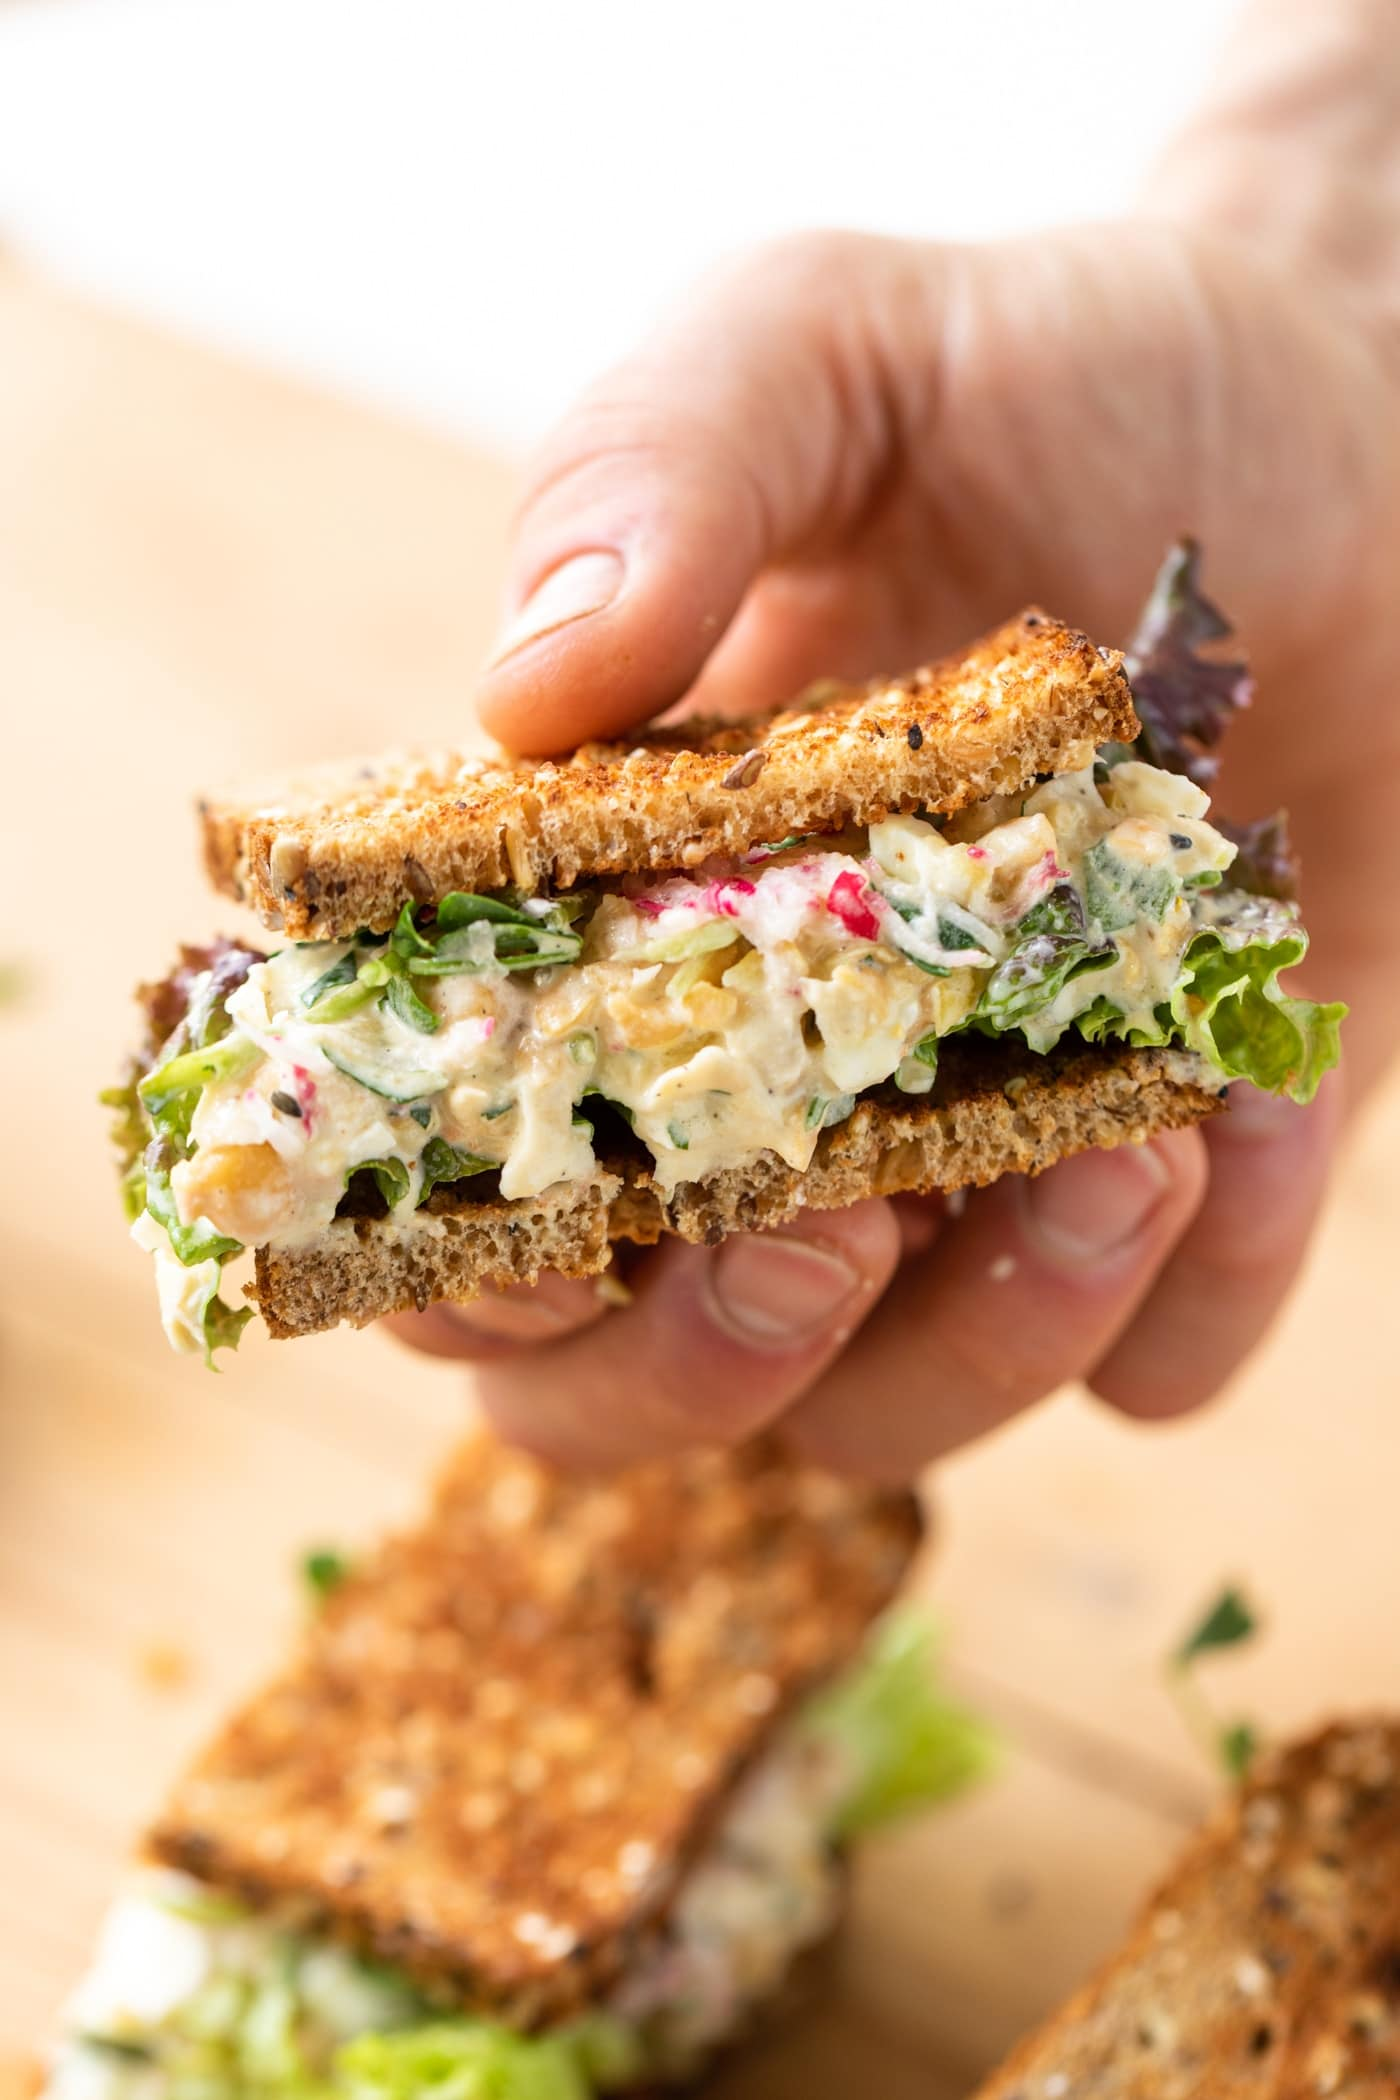 Hand holding a sandwich filled with chickpea salad and topped with lettuce and radish with extra half of sandwich sitting on wood board in background